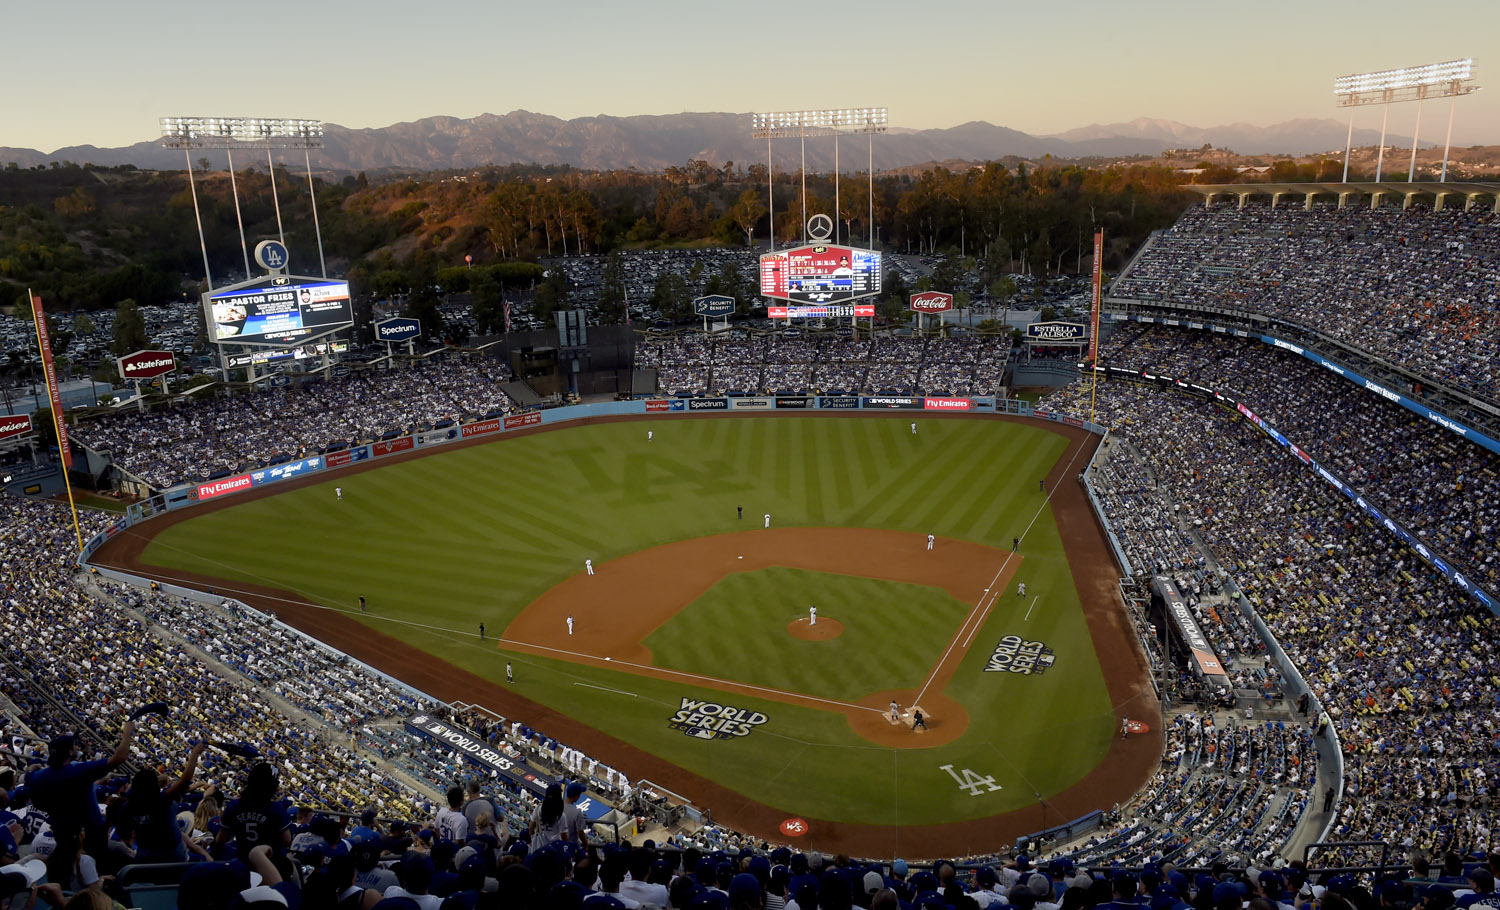 World_Series-Logo_2017_DodgerStadium.jpg